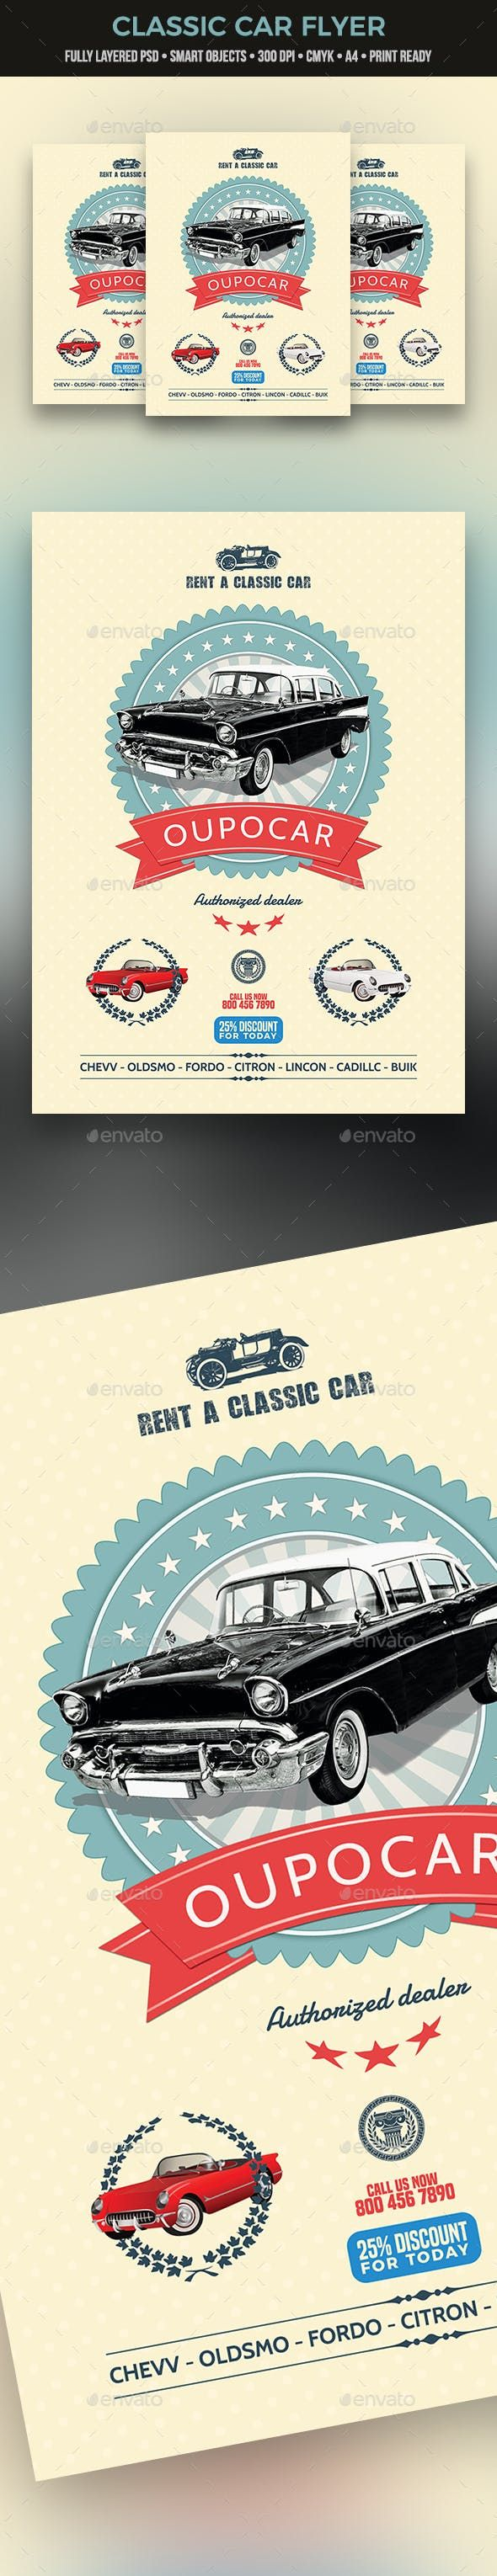 Classic Car Flyer — Photoshop PSD #classic #white